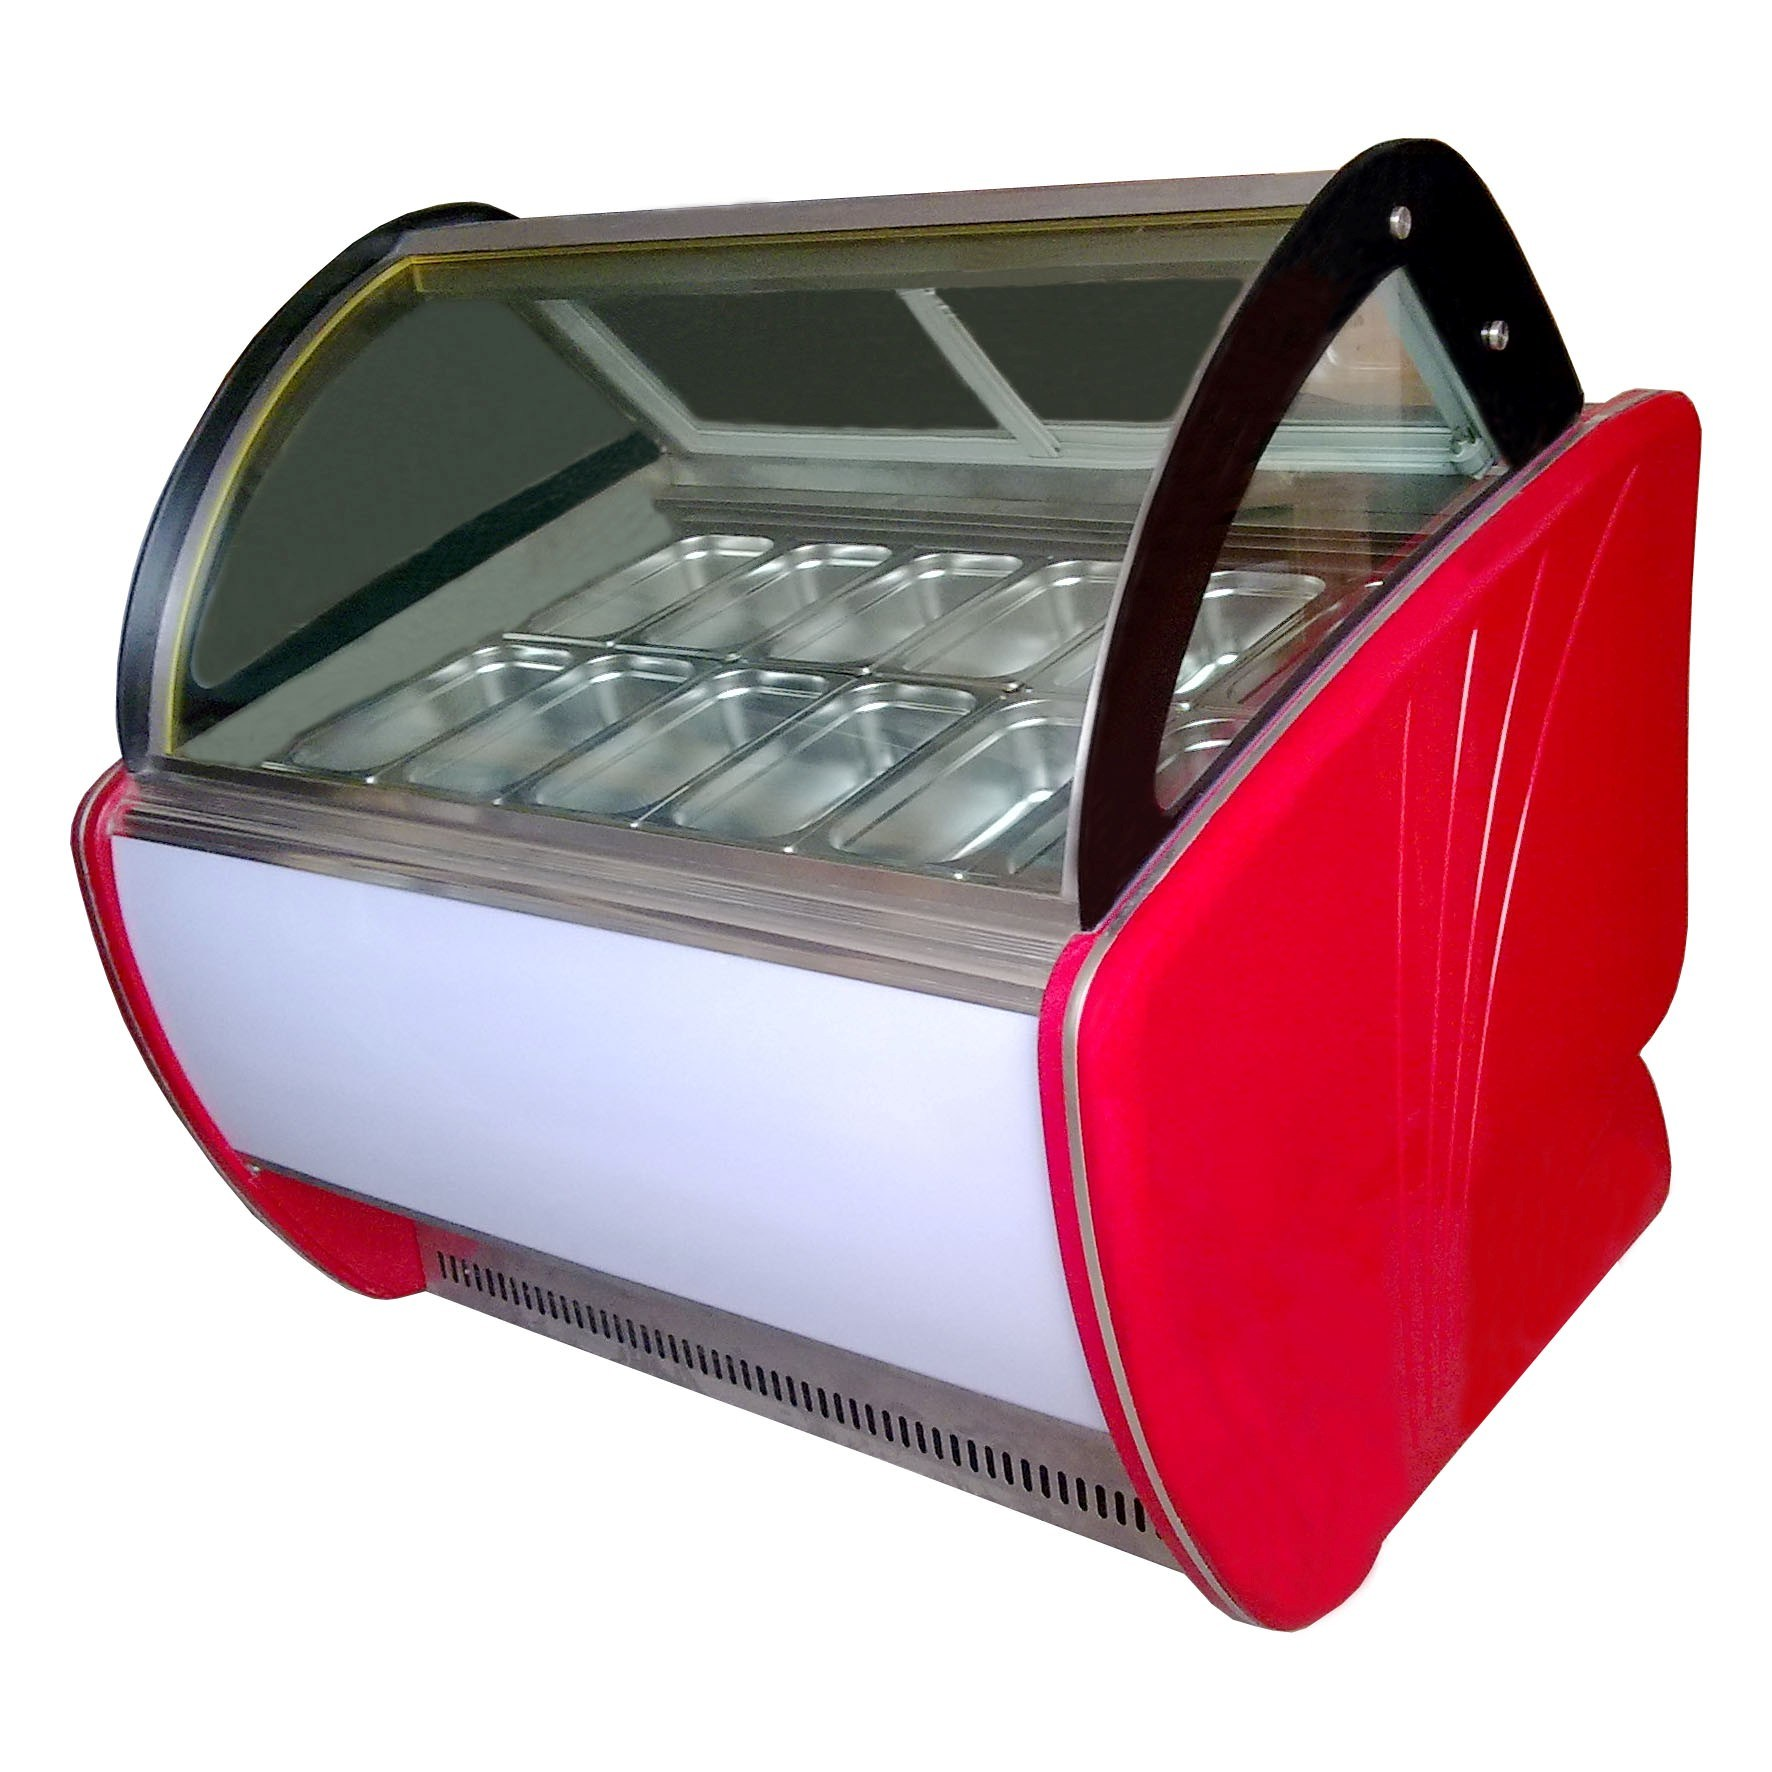 14 Flavors Hard Ice Cream Display Case